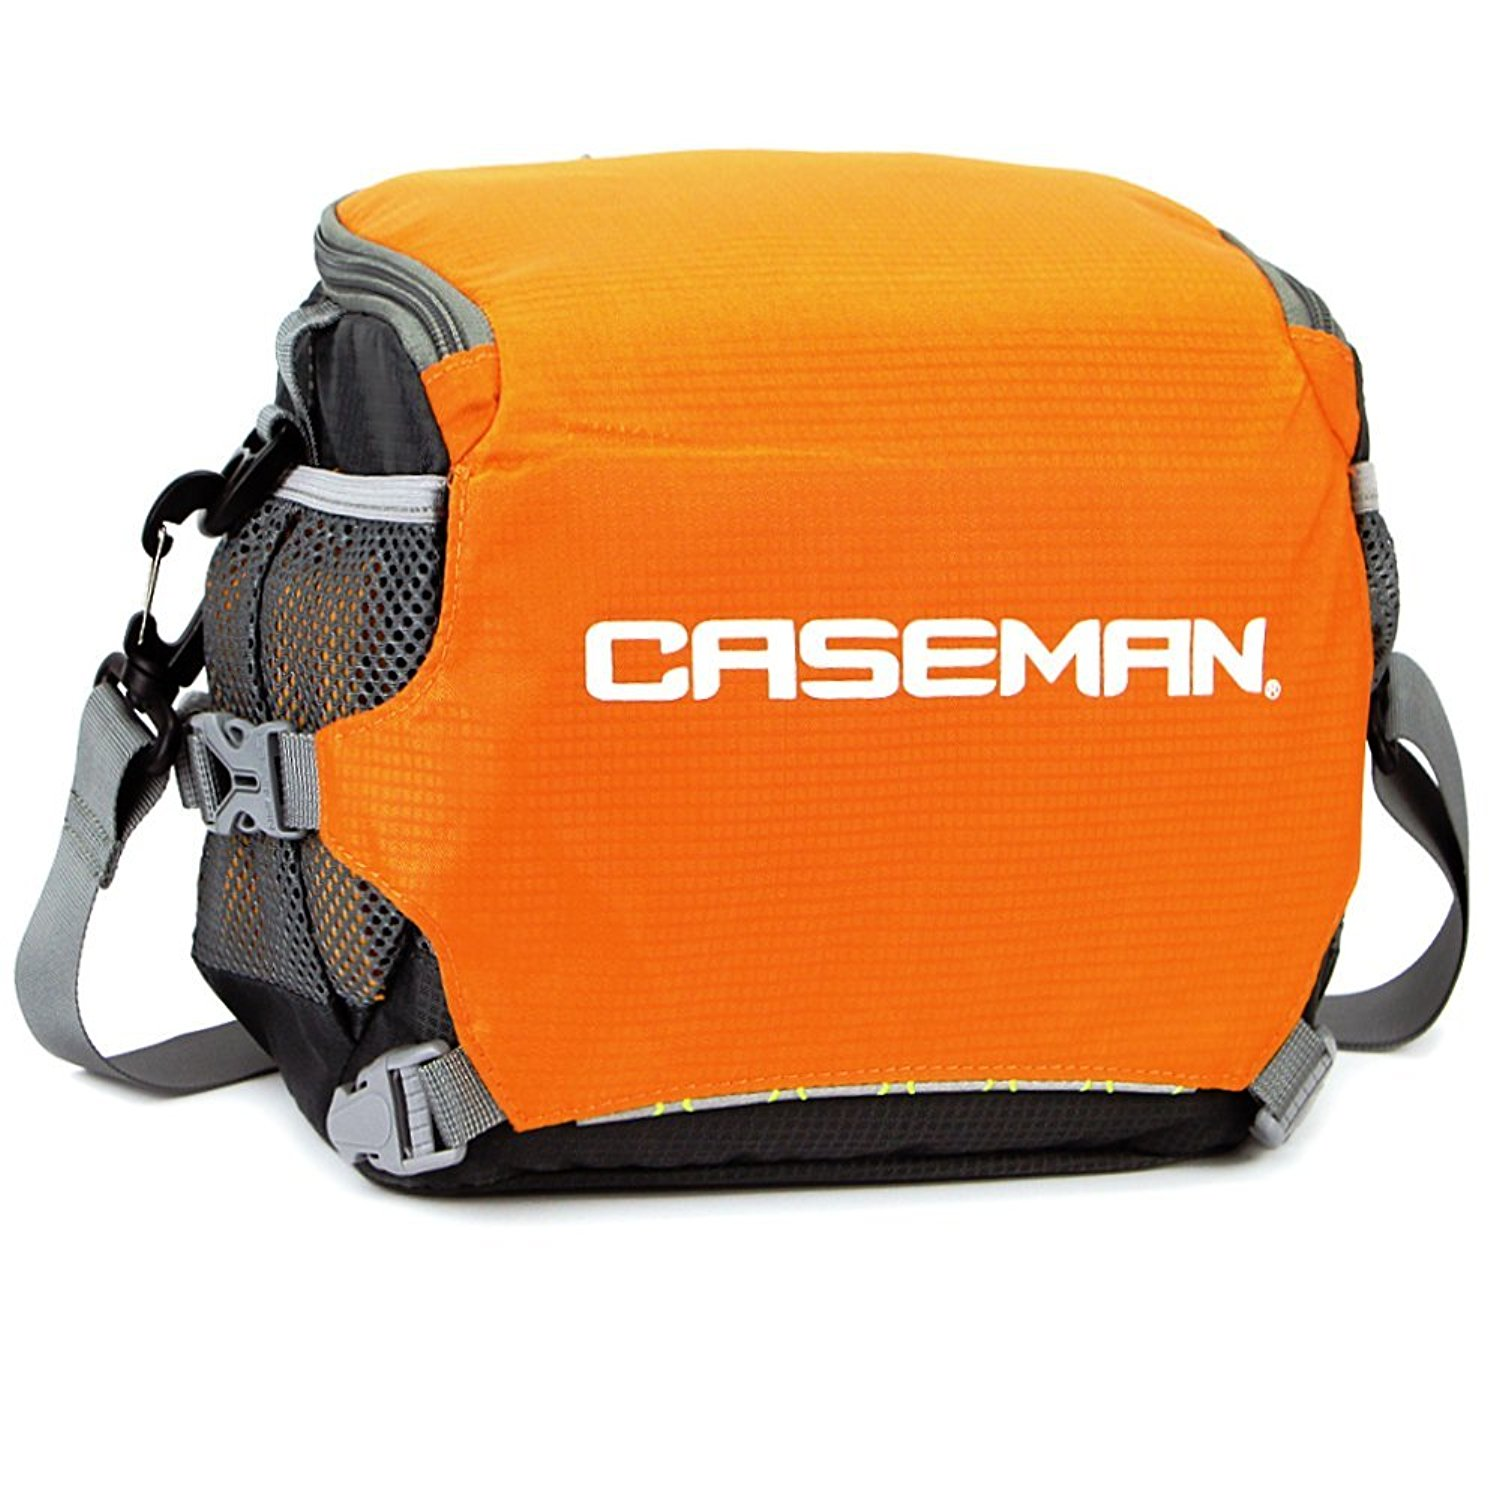 91556f7861c Caseman Aw01 Orange Dslr Slr Camera shoulder bag case Waist bag Travel  Waterproof fit for Canon